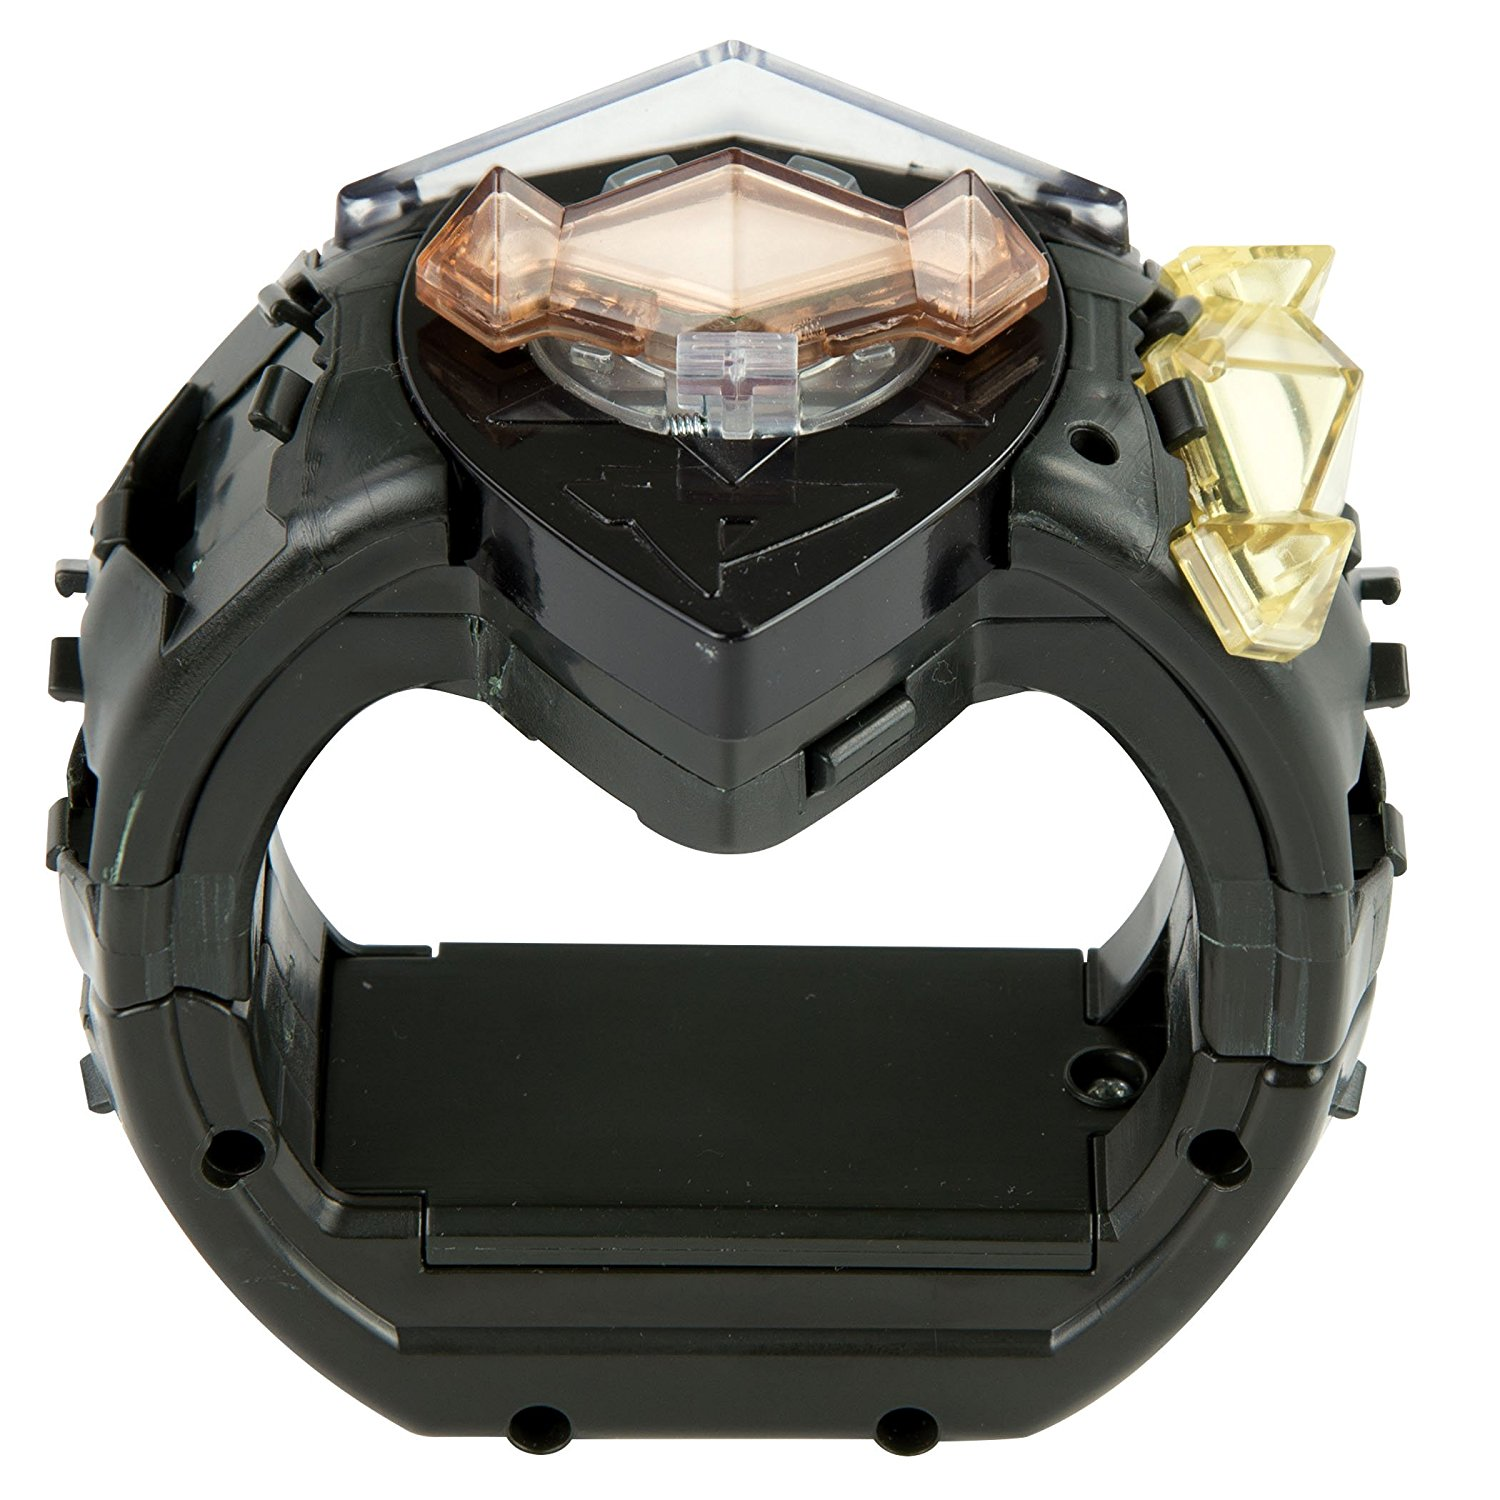 More Details About The New Pokemon Z Power Ring Set Pre Orders Open Nintendo Everything